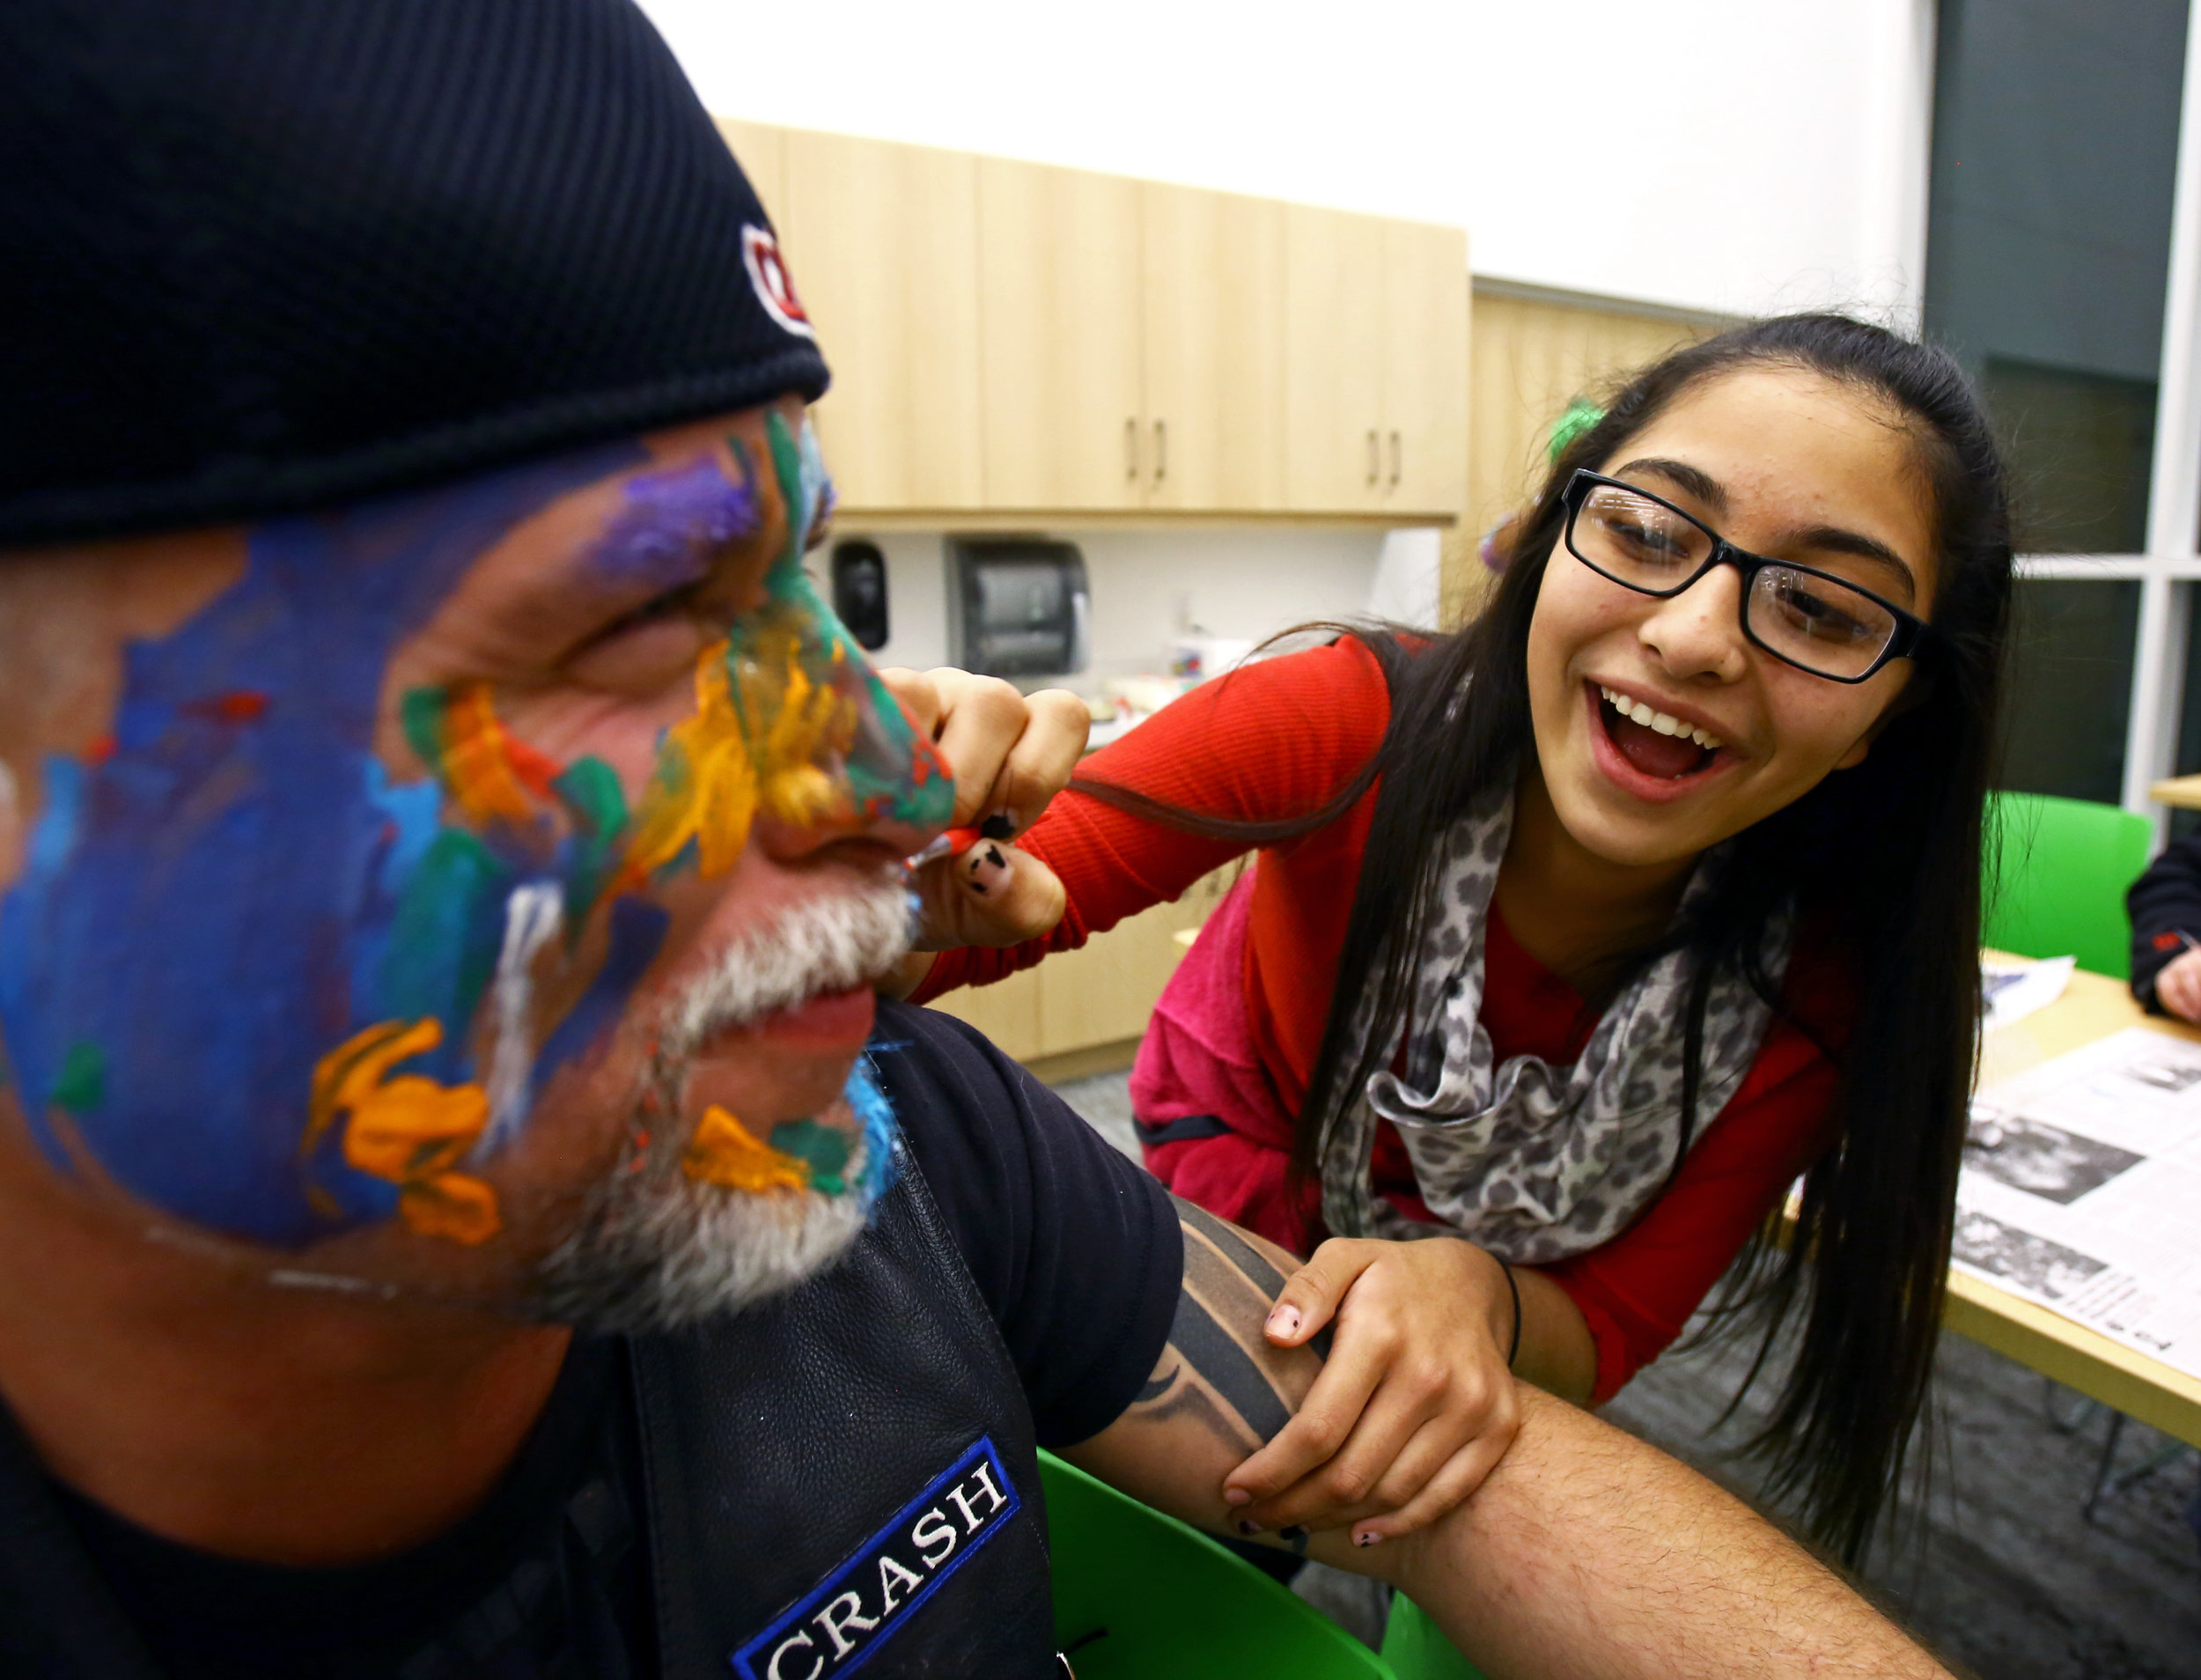 """""""Little Shorty"""" of Toledo paints on Warriors for the Children member """"Crash's"""" face during the arts and crafts portion of the monthly Bullfrogs Against Bullying peer support group at the King Road Branch Library in Sylvania, Oh. on Monday, Dec. 19, 2016."""